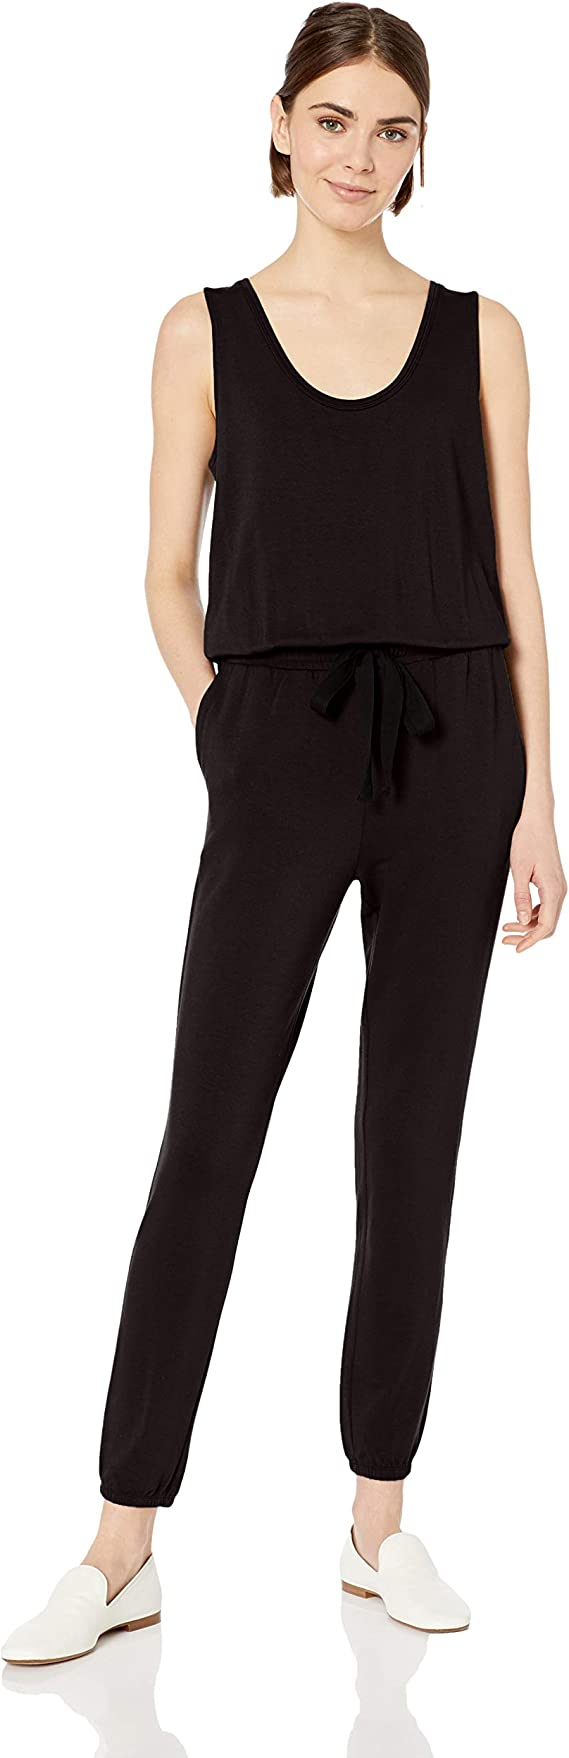 Amazon Brand - Daily Ritual Women's Supersoft Terry Sleeveless Jumpsuit